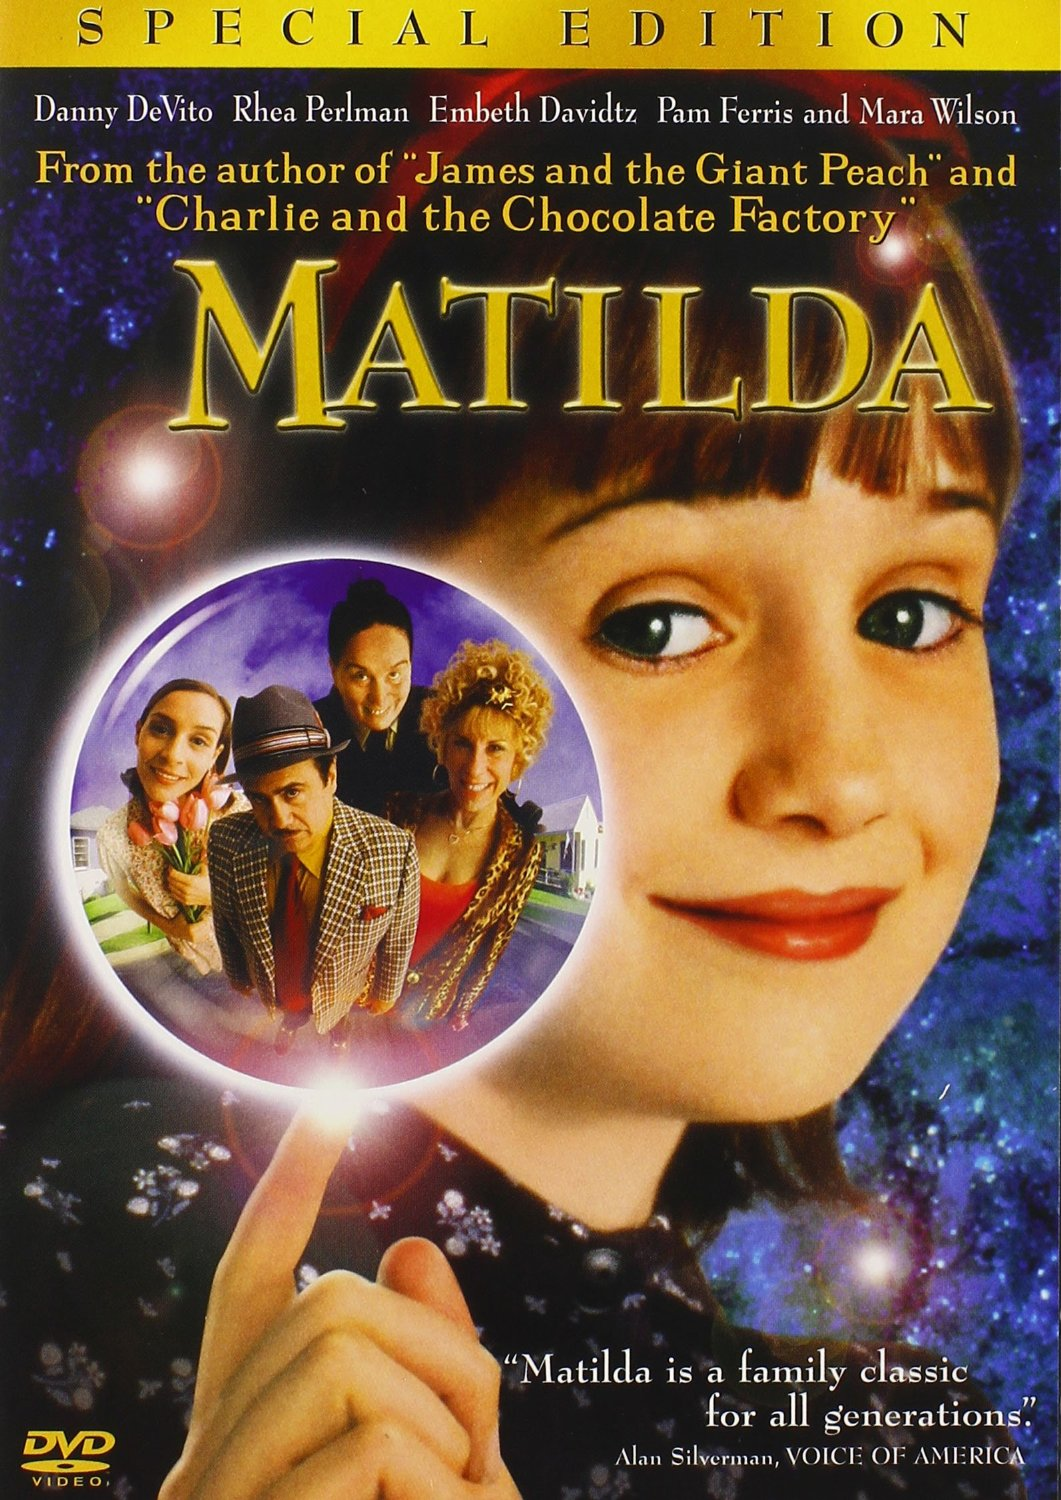 Snag A New Movie For The Kids Matilda On Dvd For Only 5